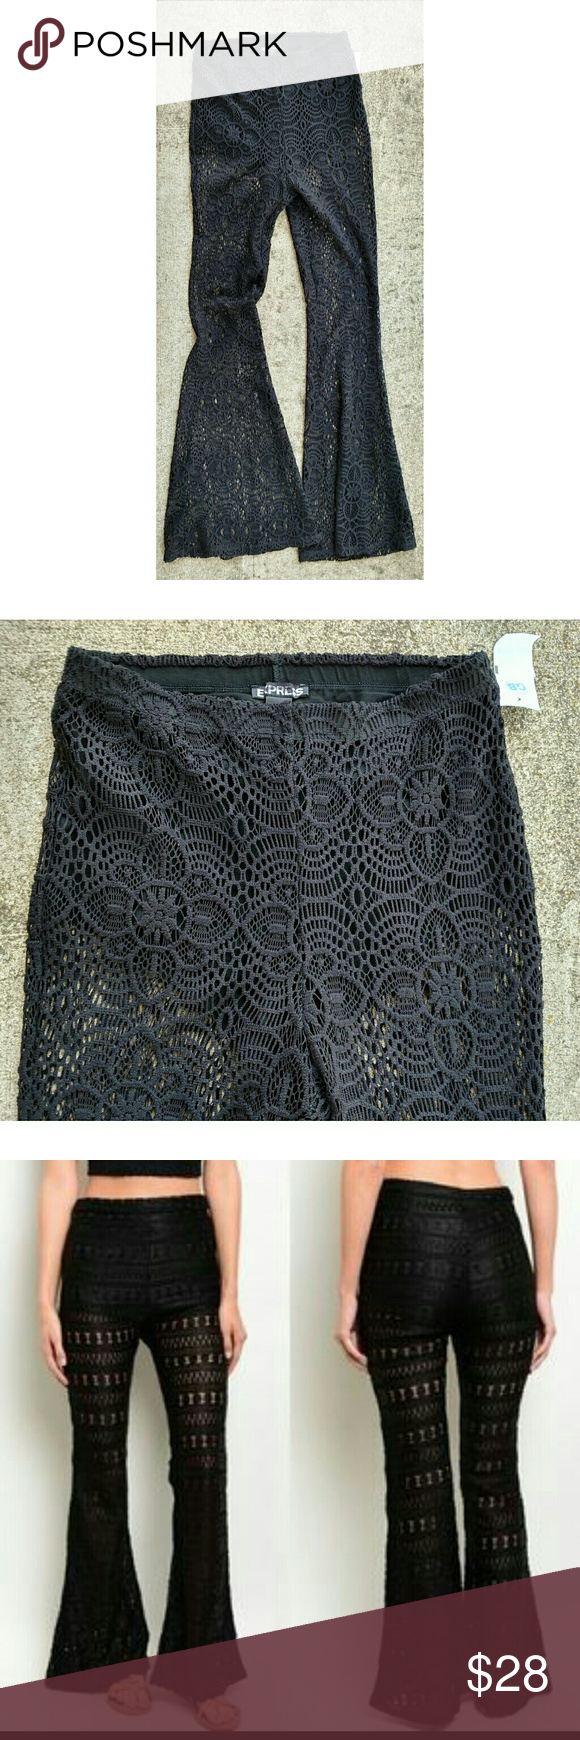 "New Express lace festival pants. Size XS New with tag. Black lace lined with bootie shorts pants. Elastic waist. Size XS Waist unstretched 26"" Rise 12"" Inseam 32"" Express Pants Boot Cut & Flare"